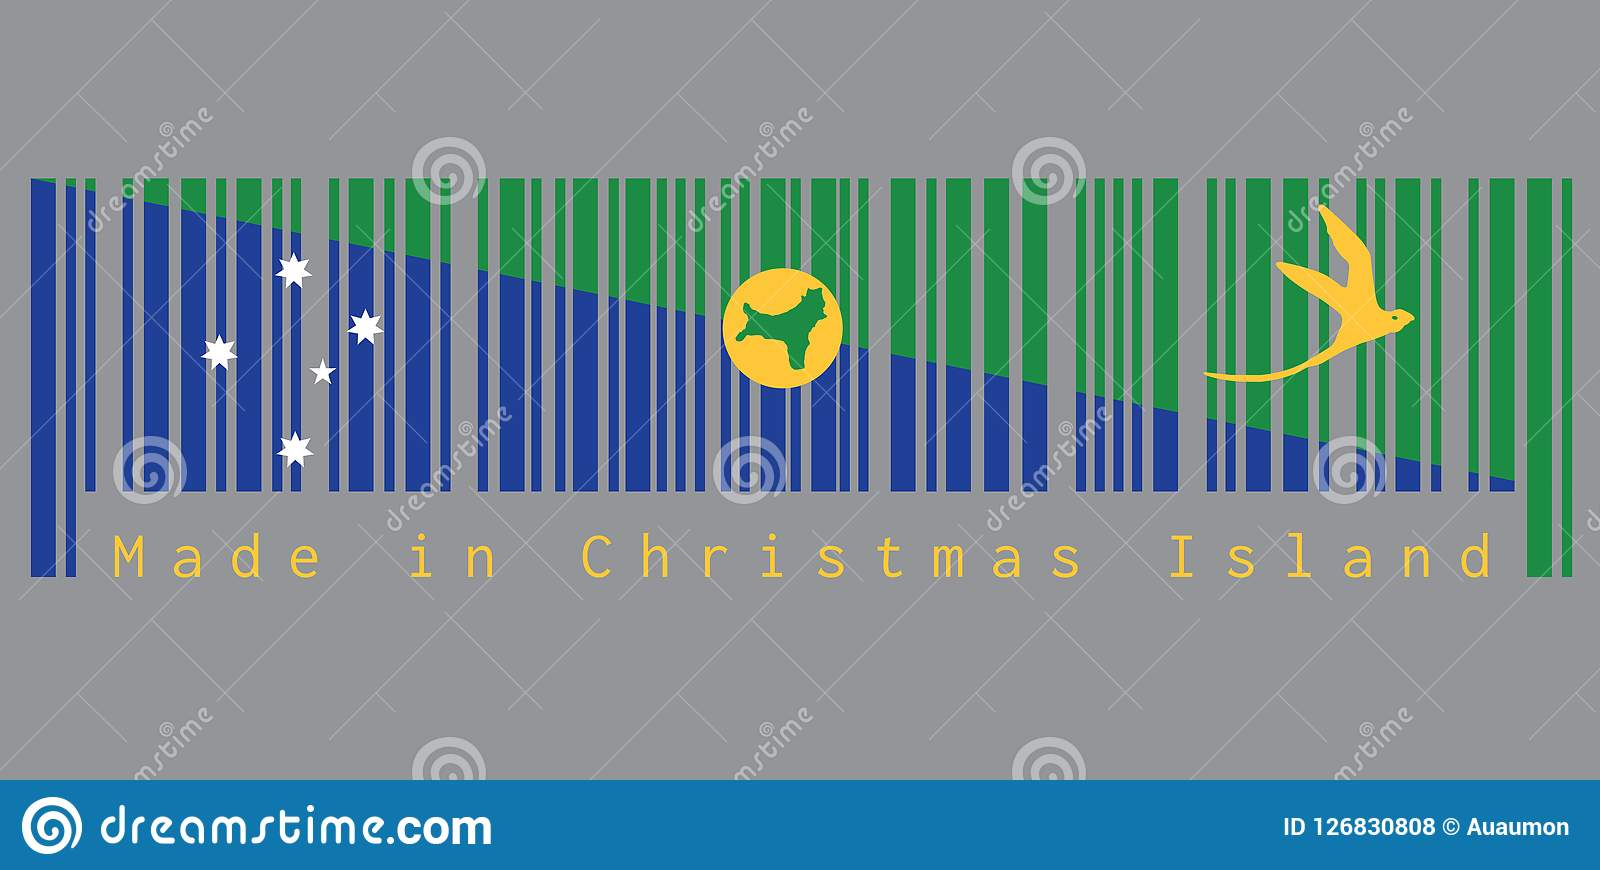 Christmas Island Flag.Barcode Set The Color Of Christmas Island Flag Blue And